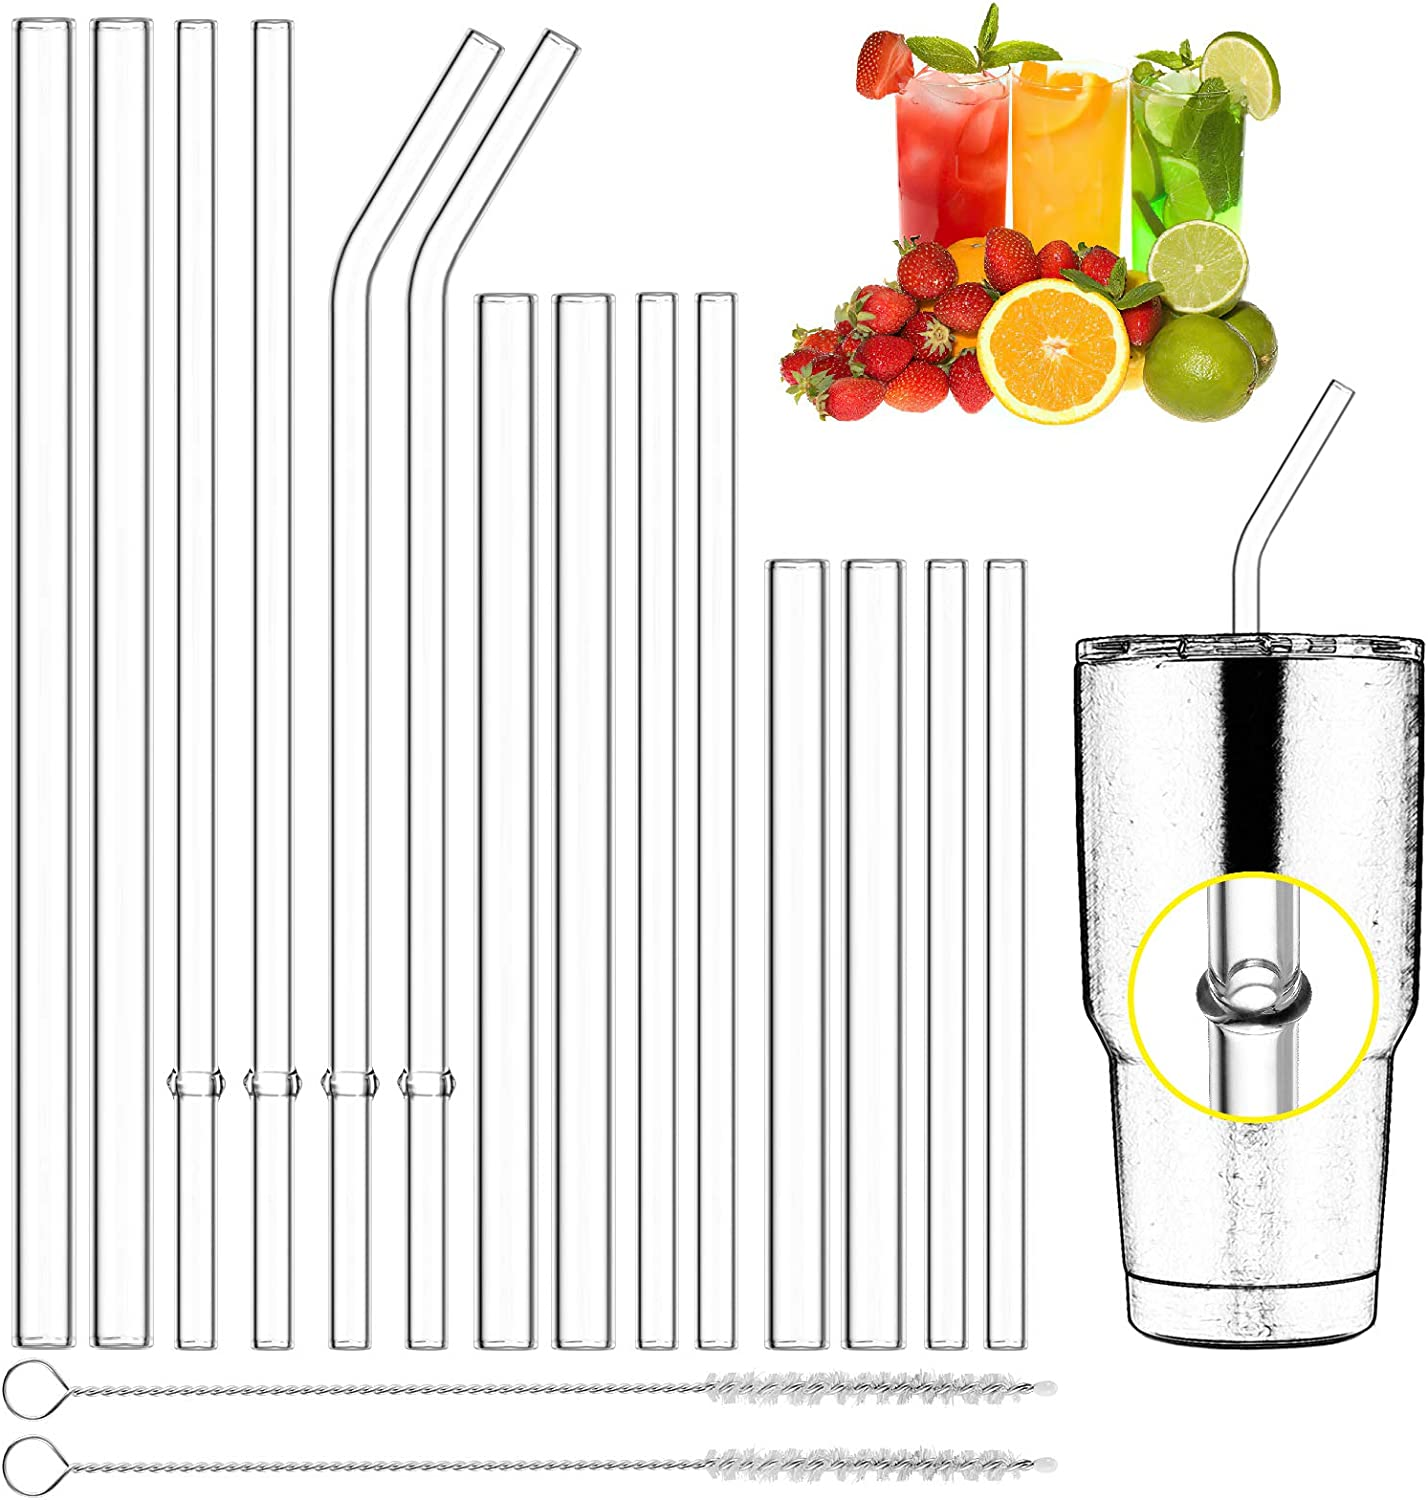 Qisiewell Reusable Glass Drinking Straws - 14 x Straws 3 x Lengths 2 x Thickness 2 x Sisal Cleaning Brushes - Smoothie Straws for Milkshakes, Frozen Drinks, Bubble Tea, Fruit Juice